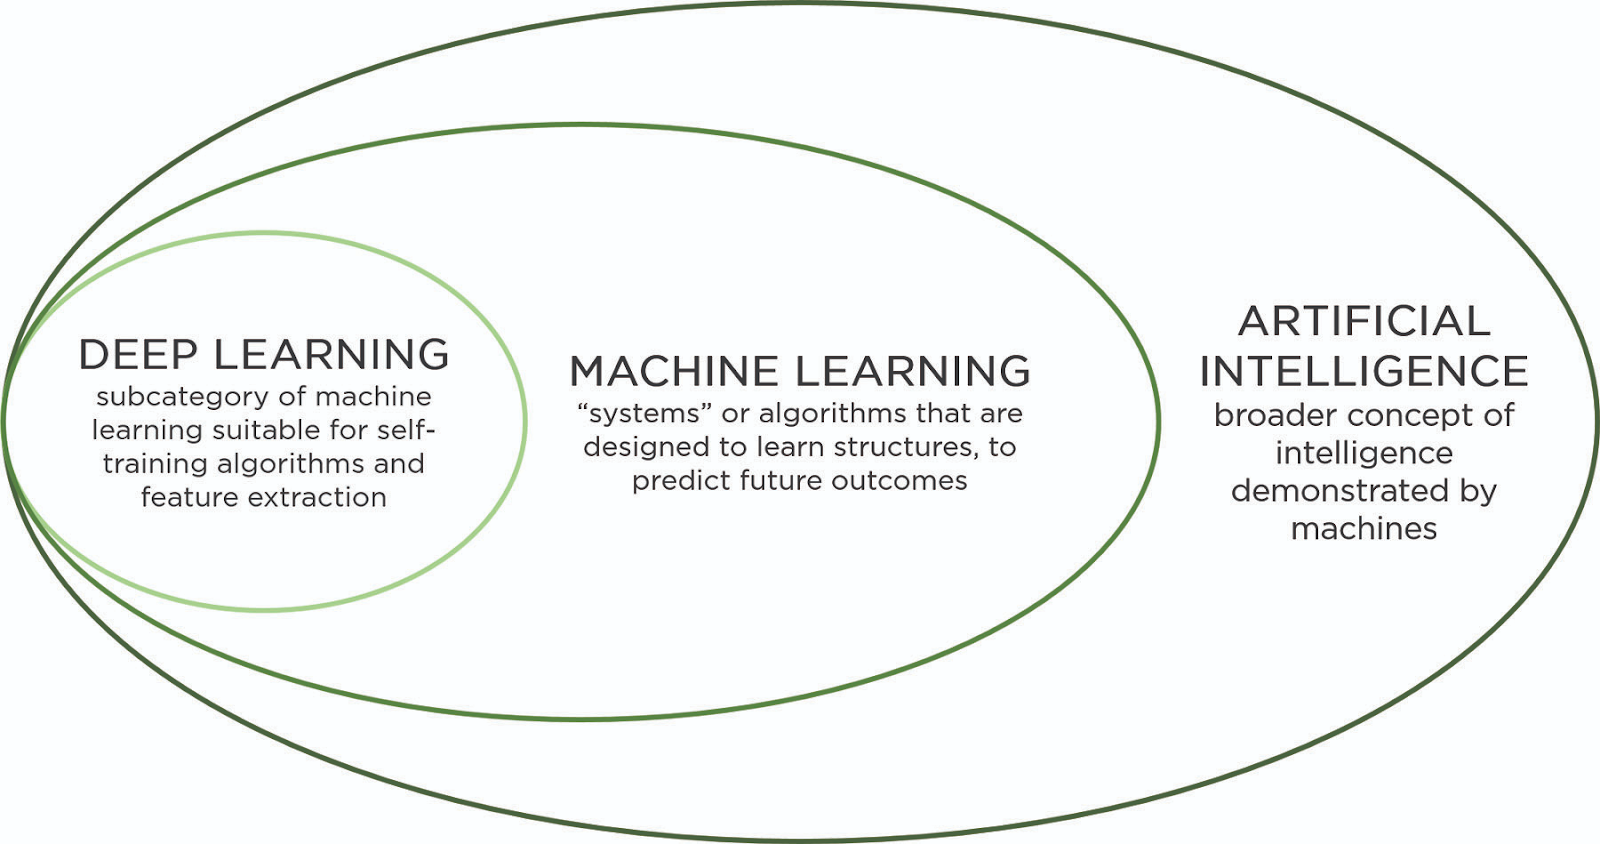 7 Reasons Why Machine Learning Is a Game Changer for Agriculture